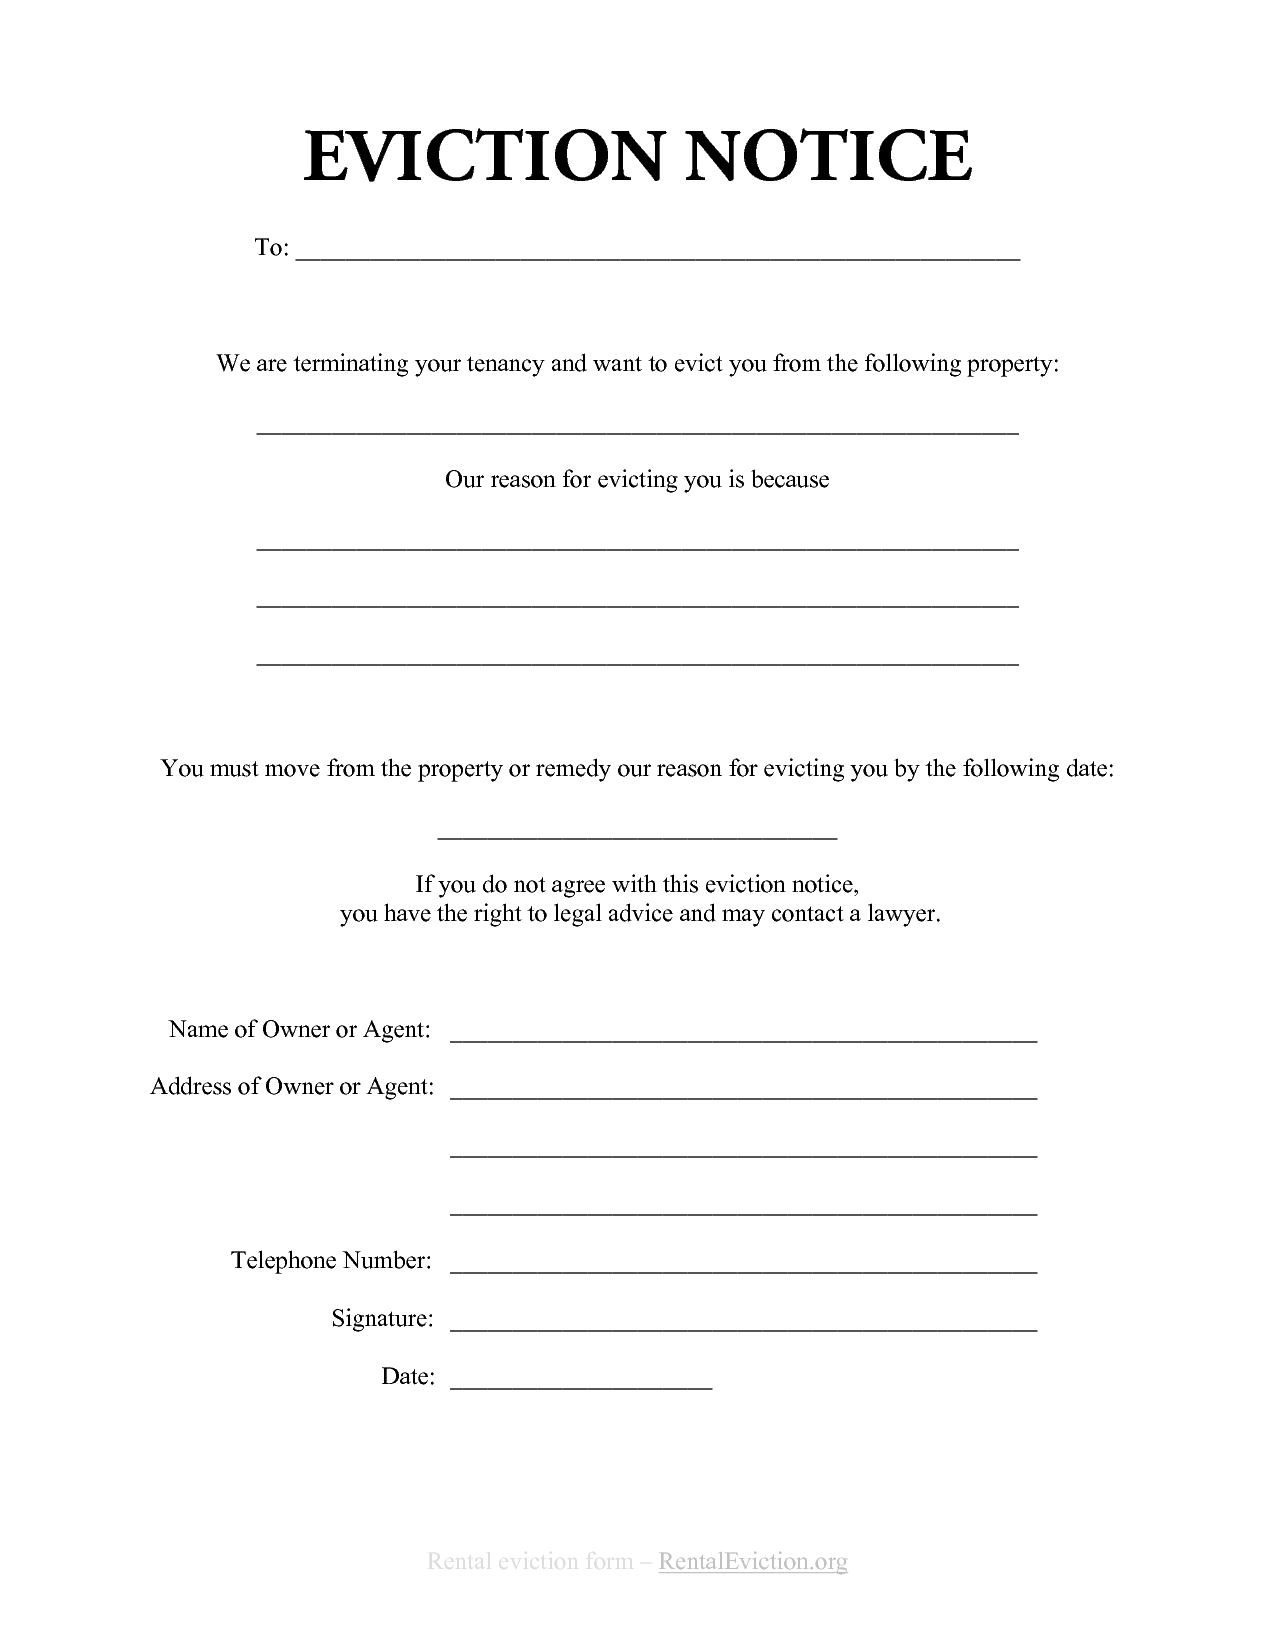 Constructive Eviction Letter Template - Free Print Out Eviction Notices Free Rental Eviction Notice